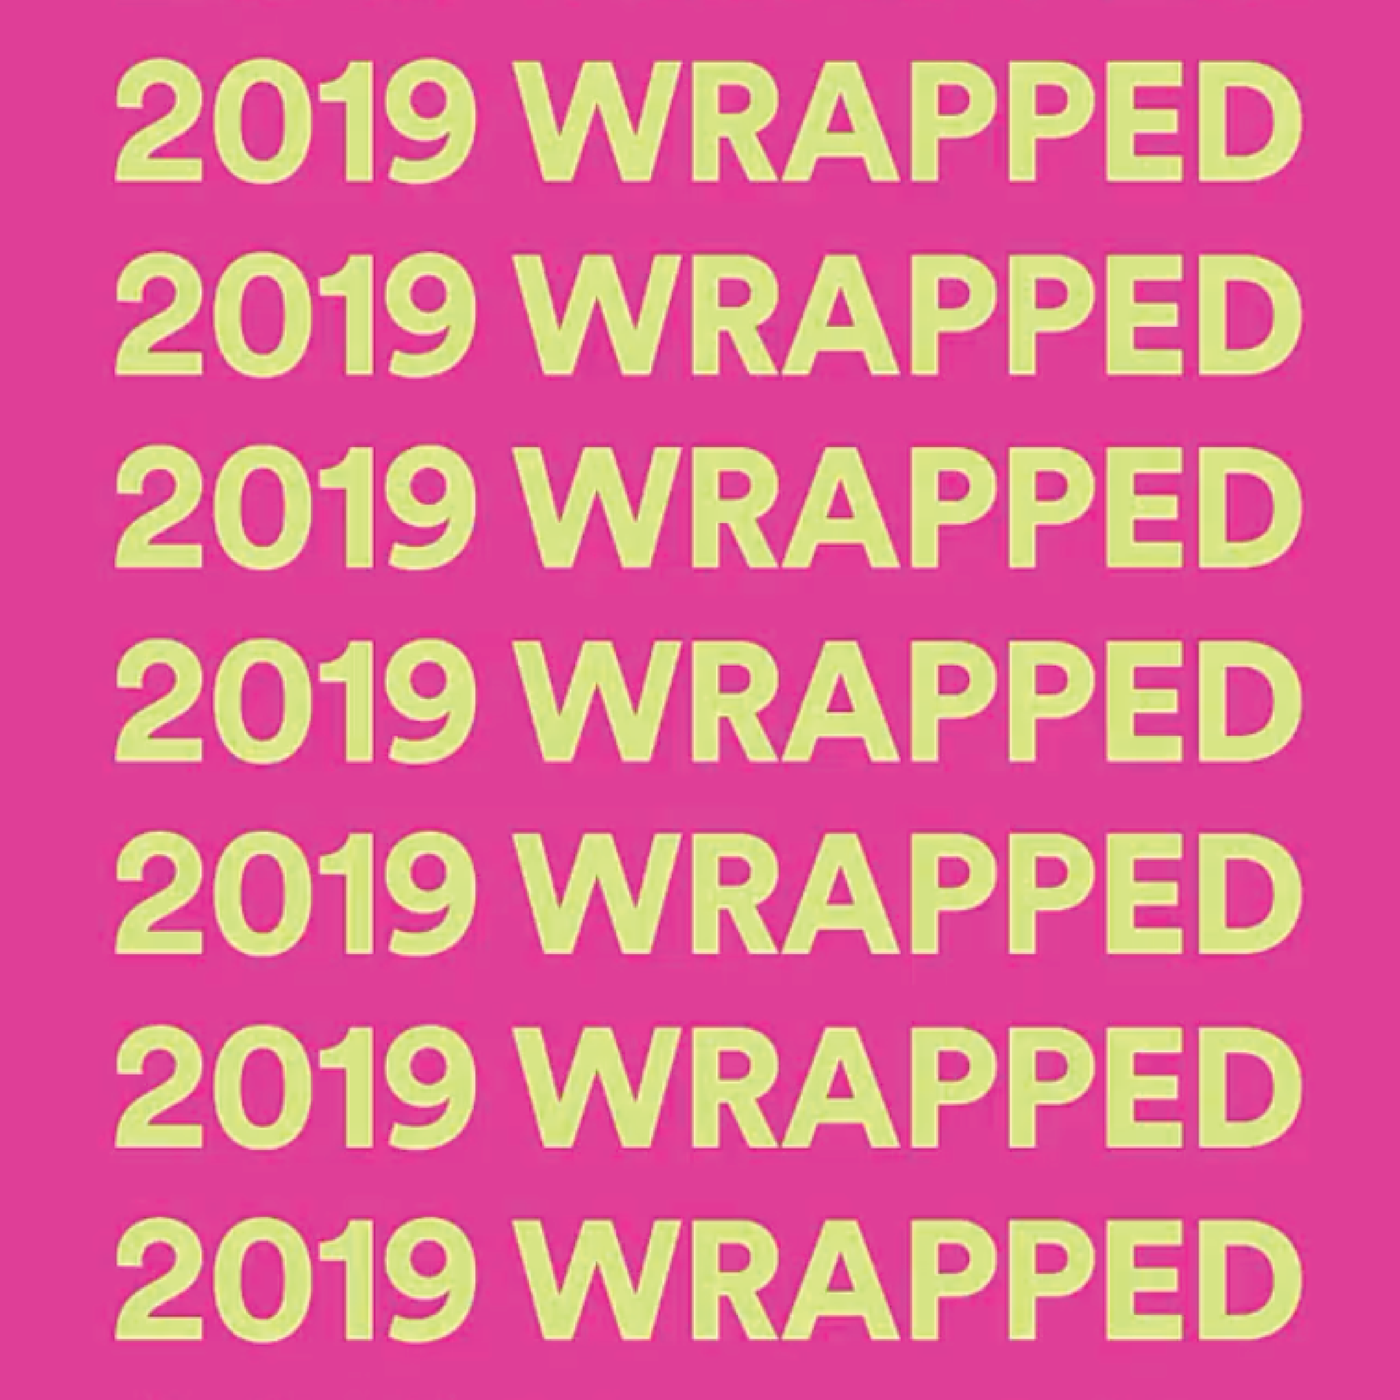 WHAT YOUR SPOTIFY 2019 WRAPPED SAYS ABOUT YOU